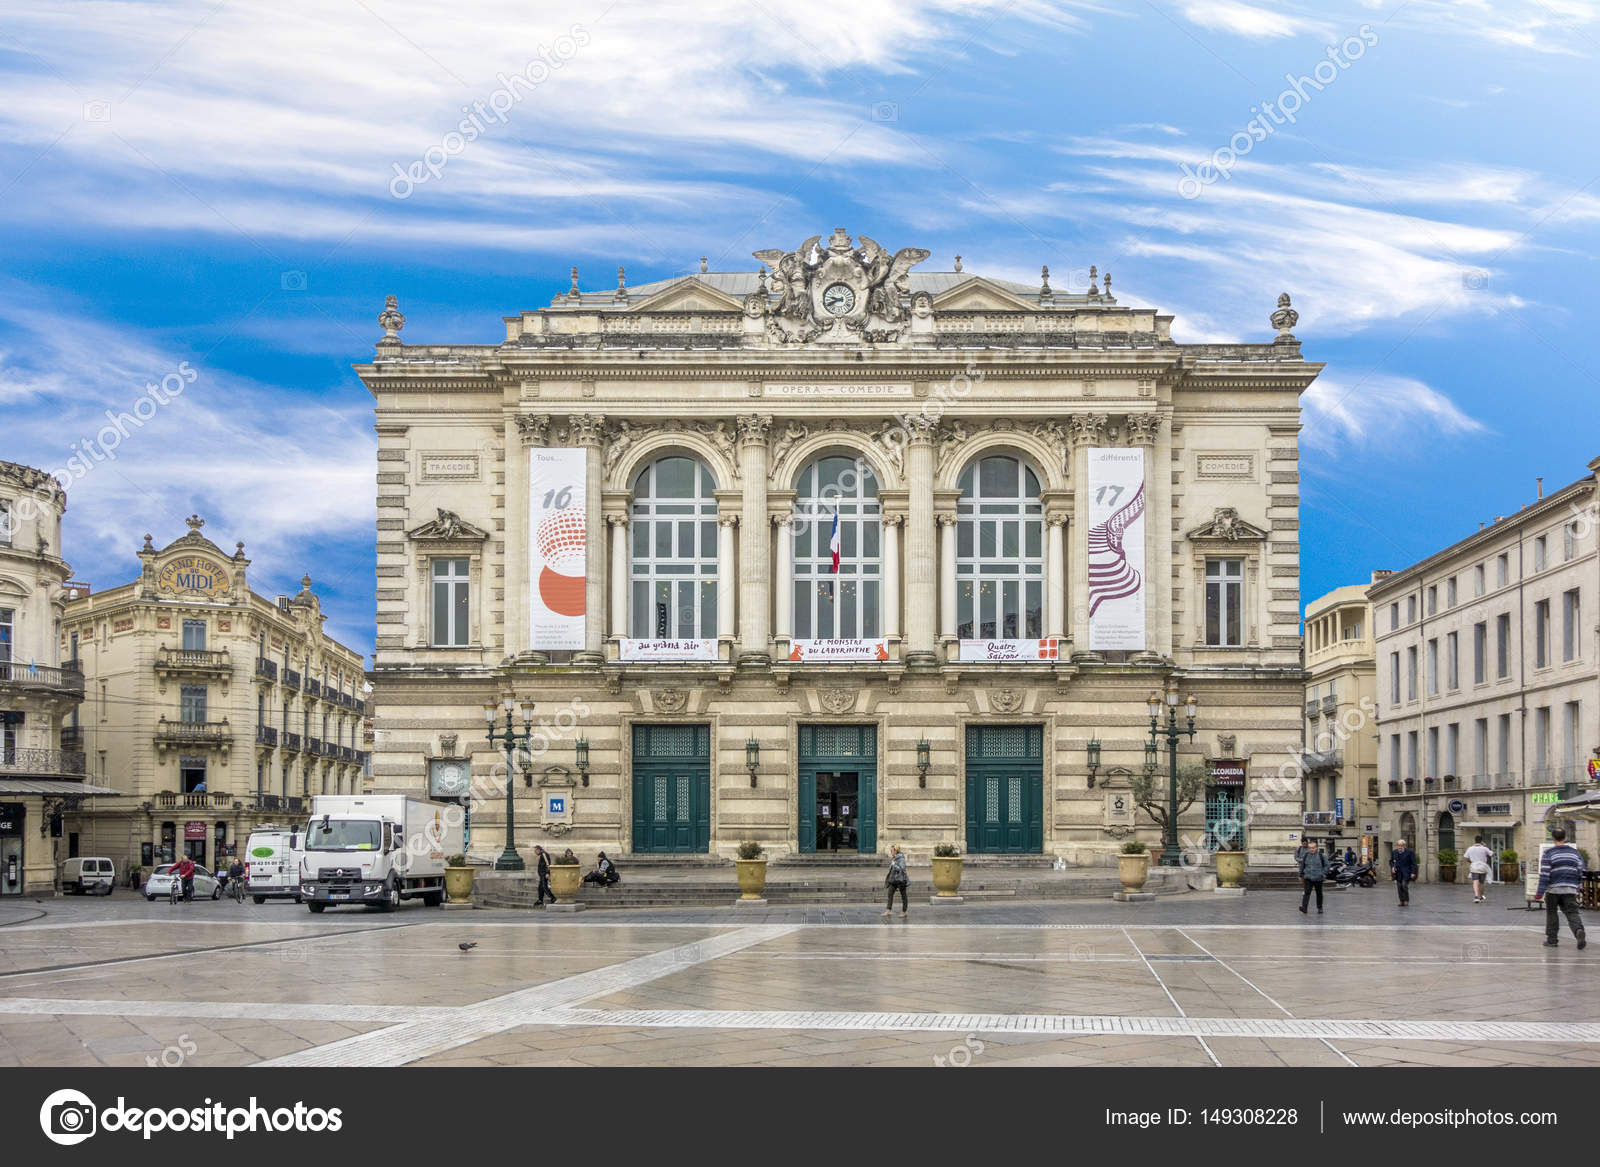 Theatre of Opera and Comedy in Montpellier 9